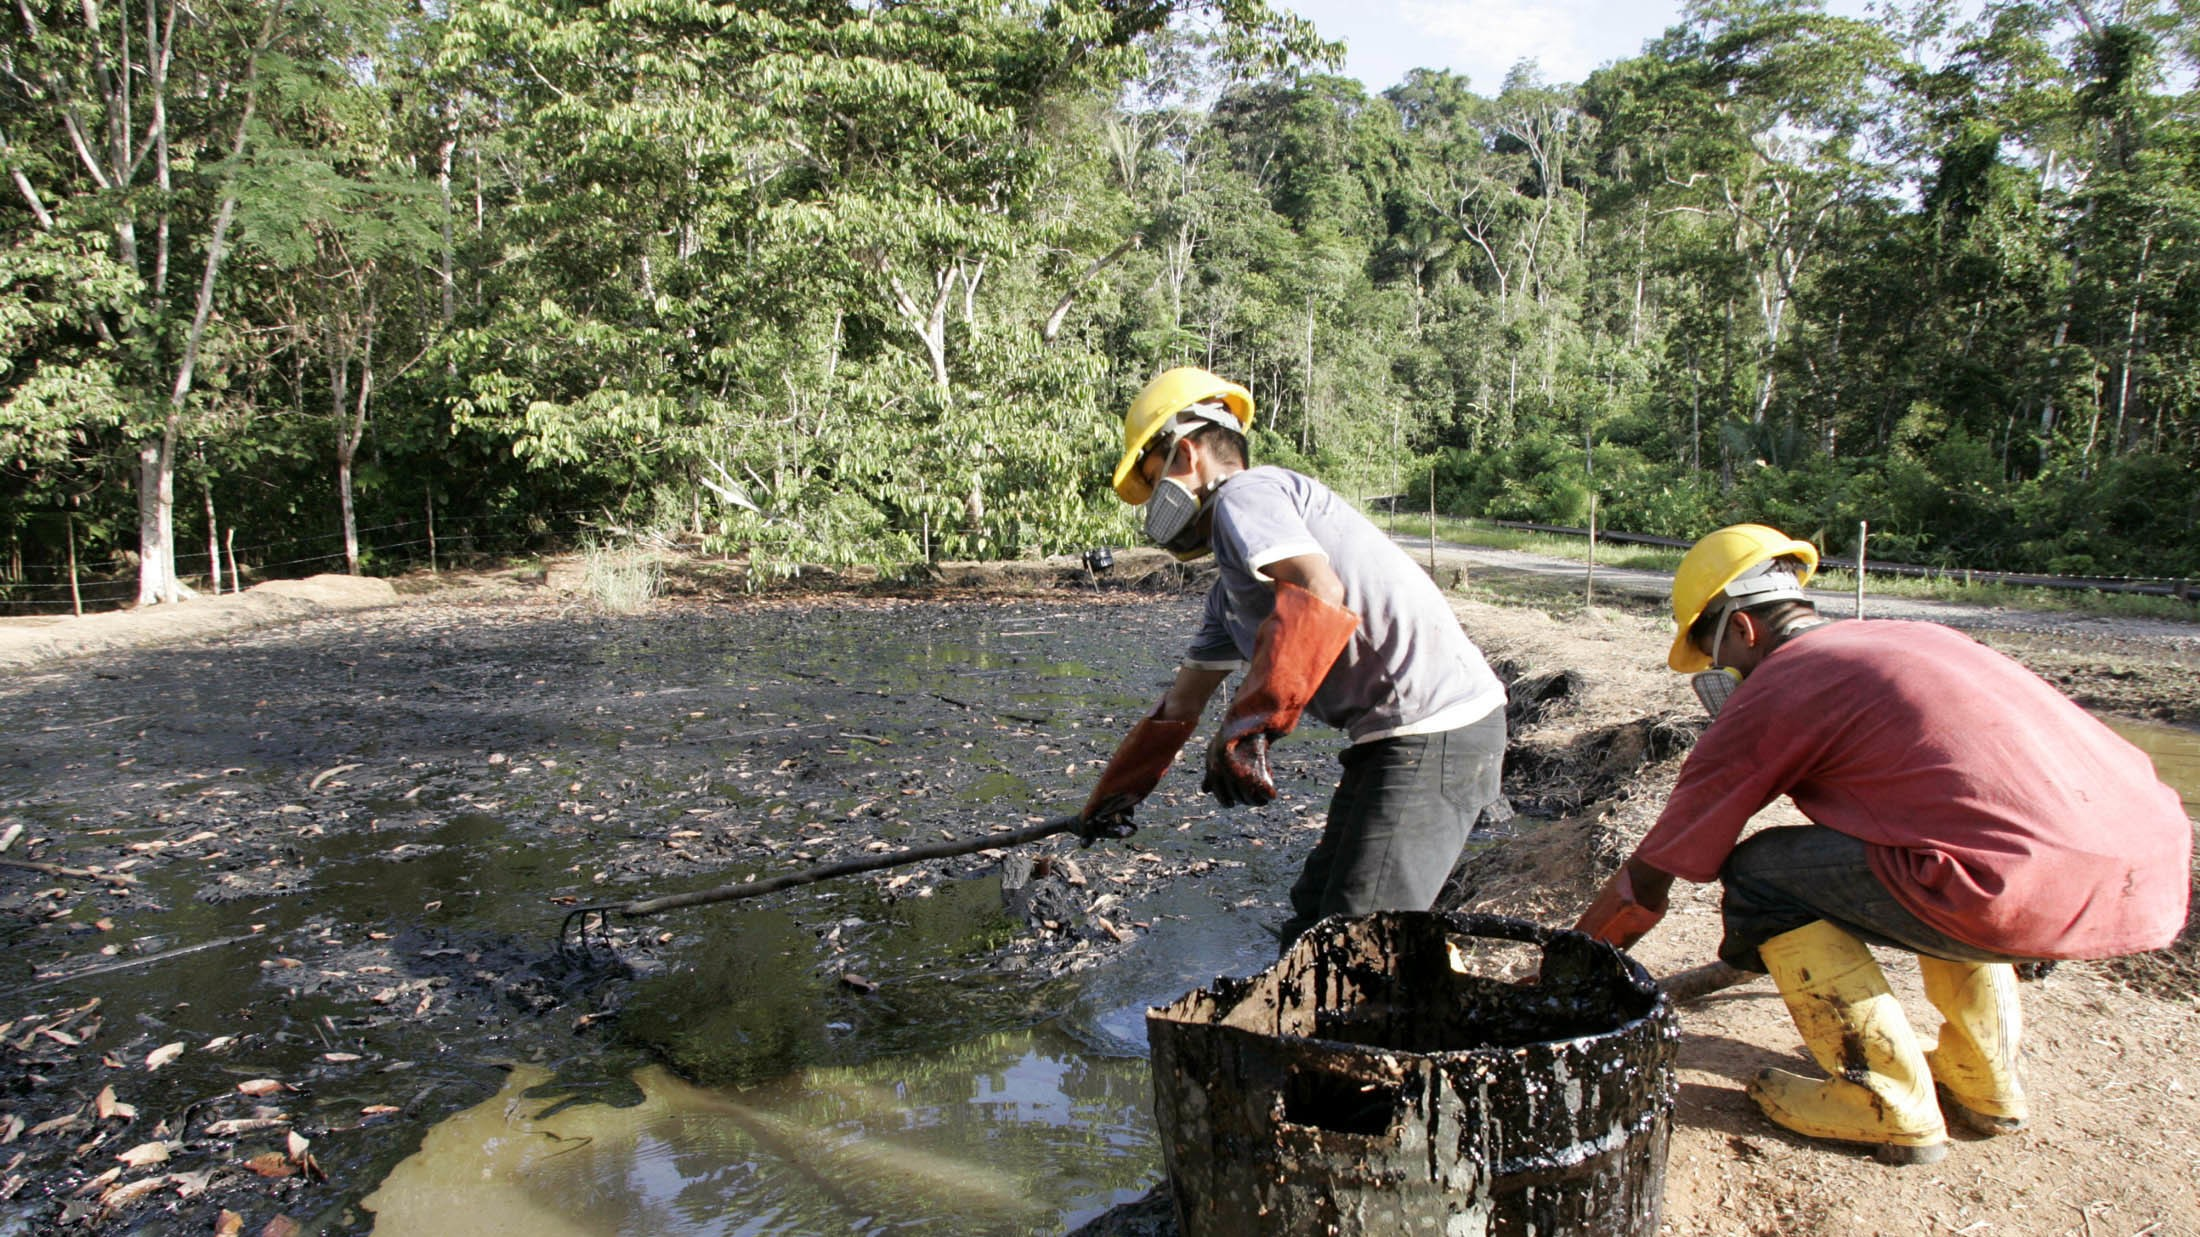 There Is Persistent Contamination at Former Chevron Sites in the Amazon